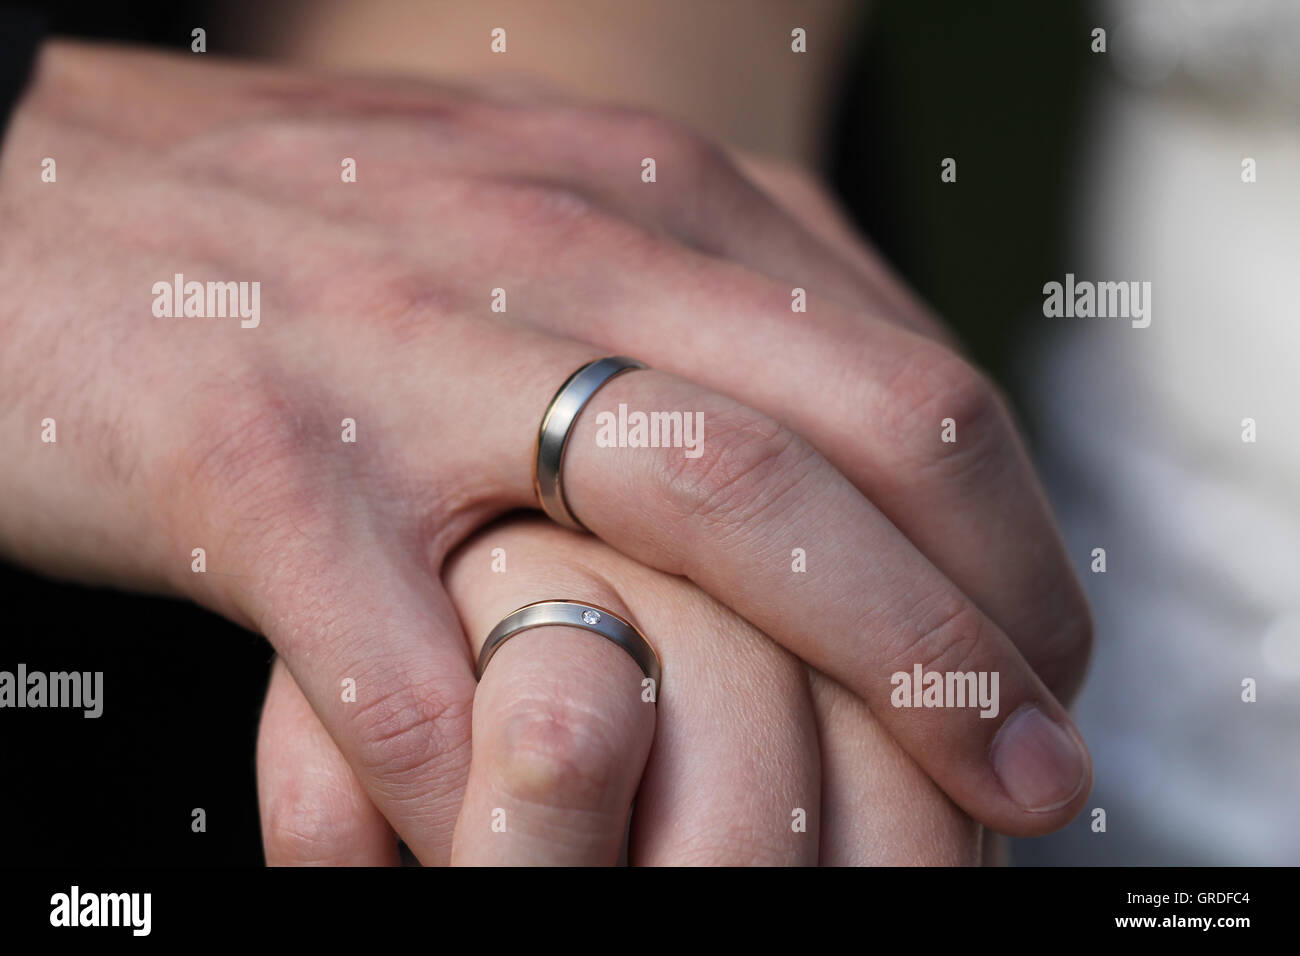 Intertwined And Hands Stock Photos & Intertwined And Hands Stock ...